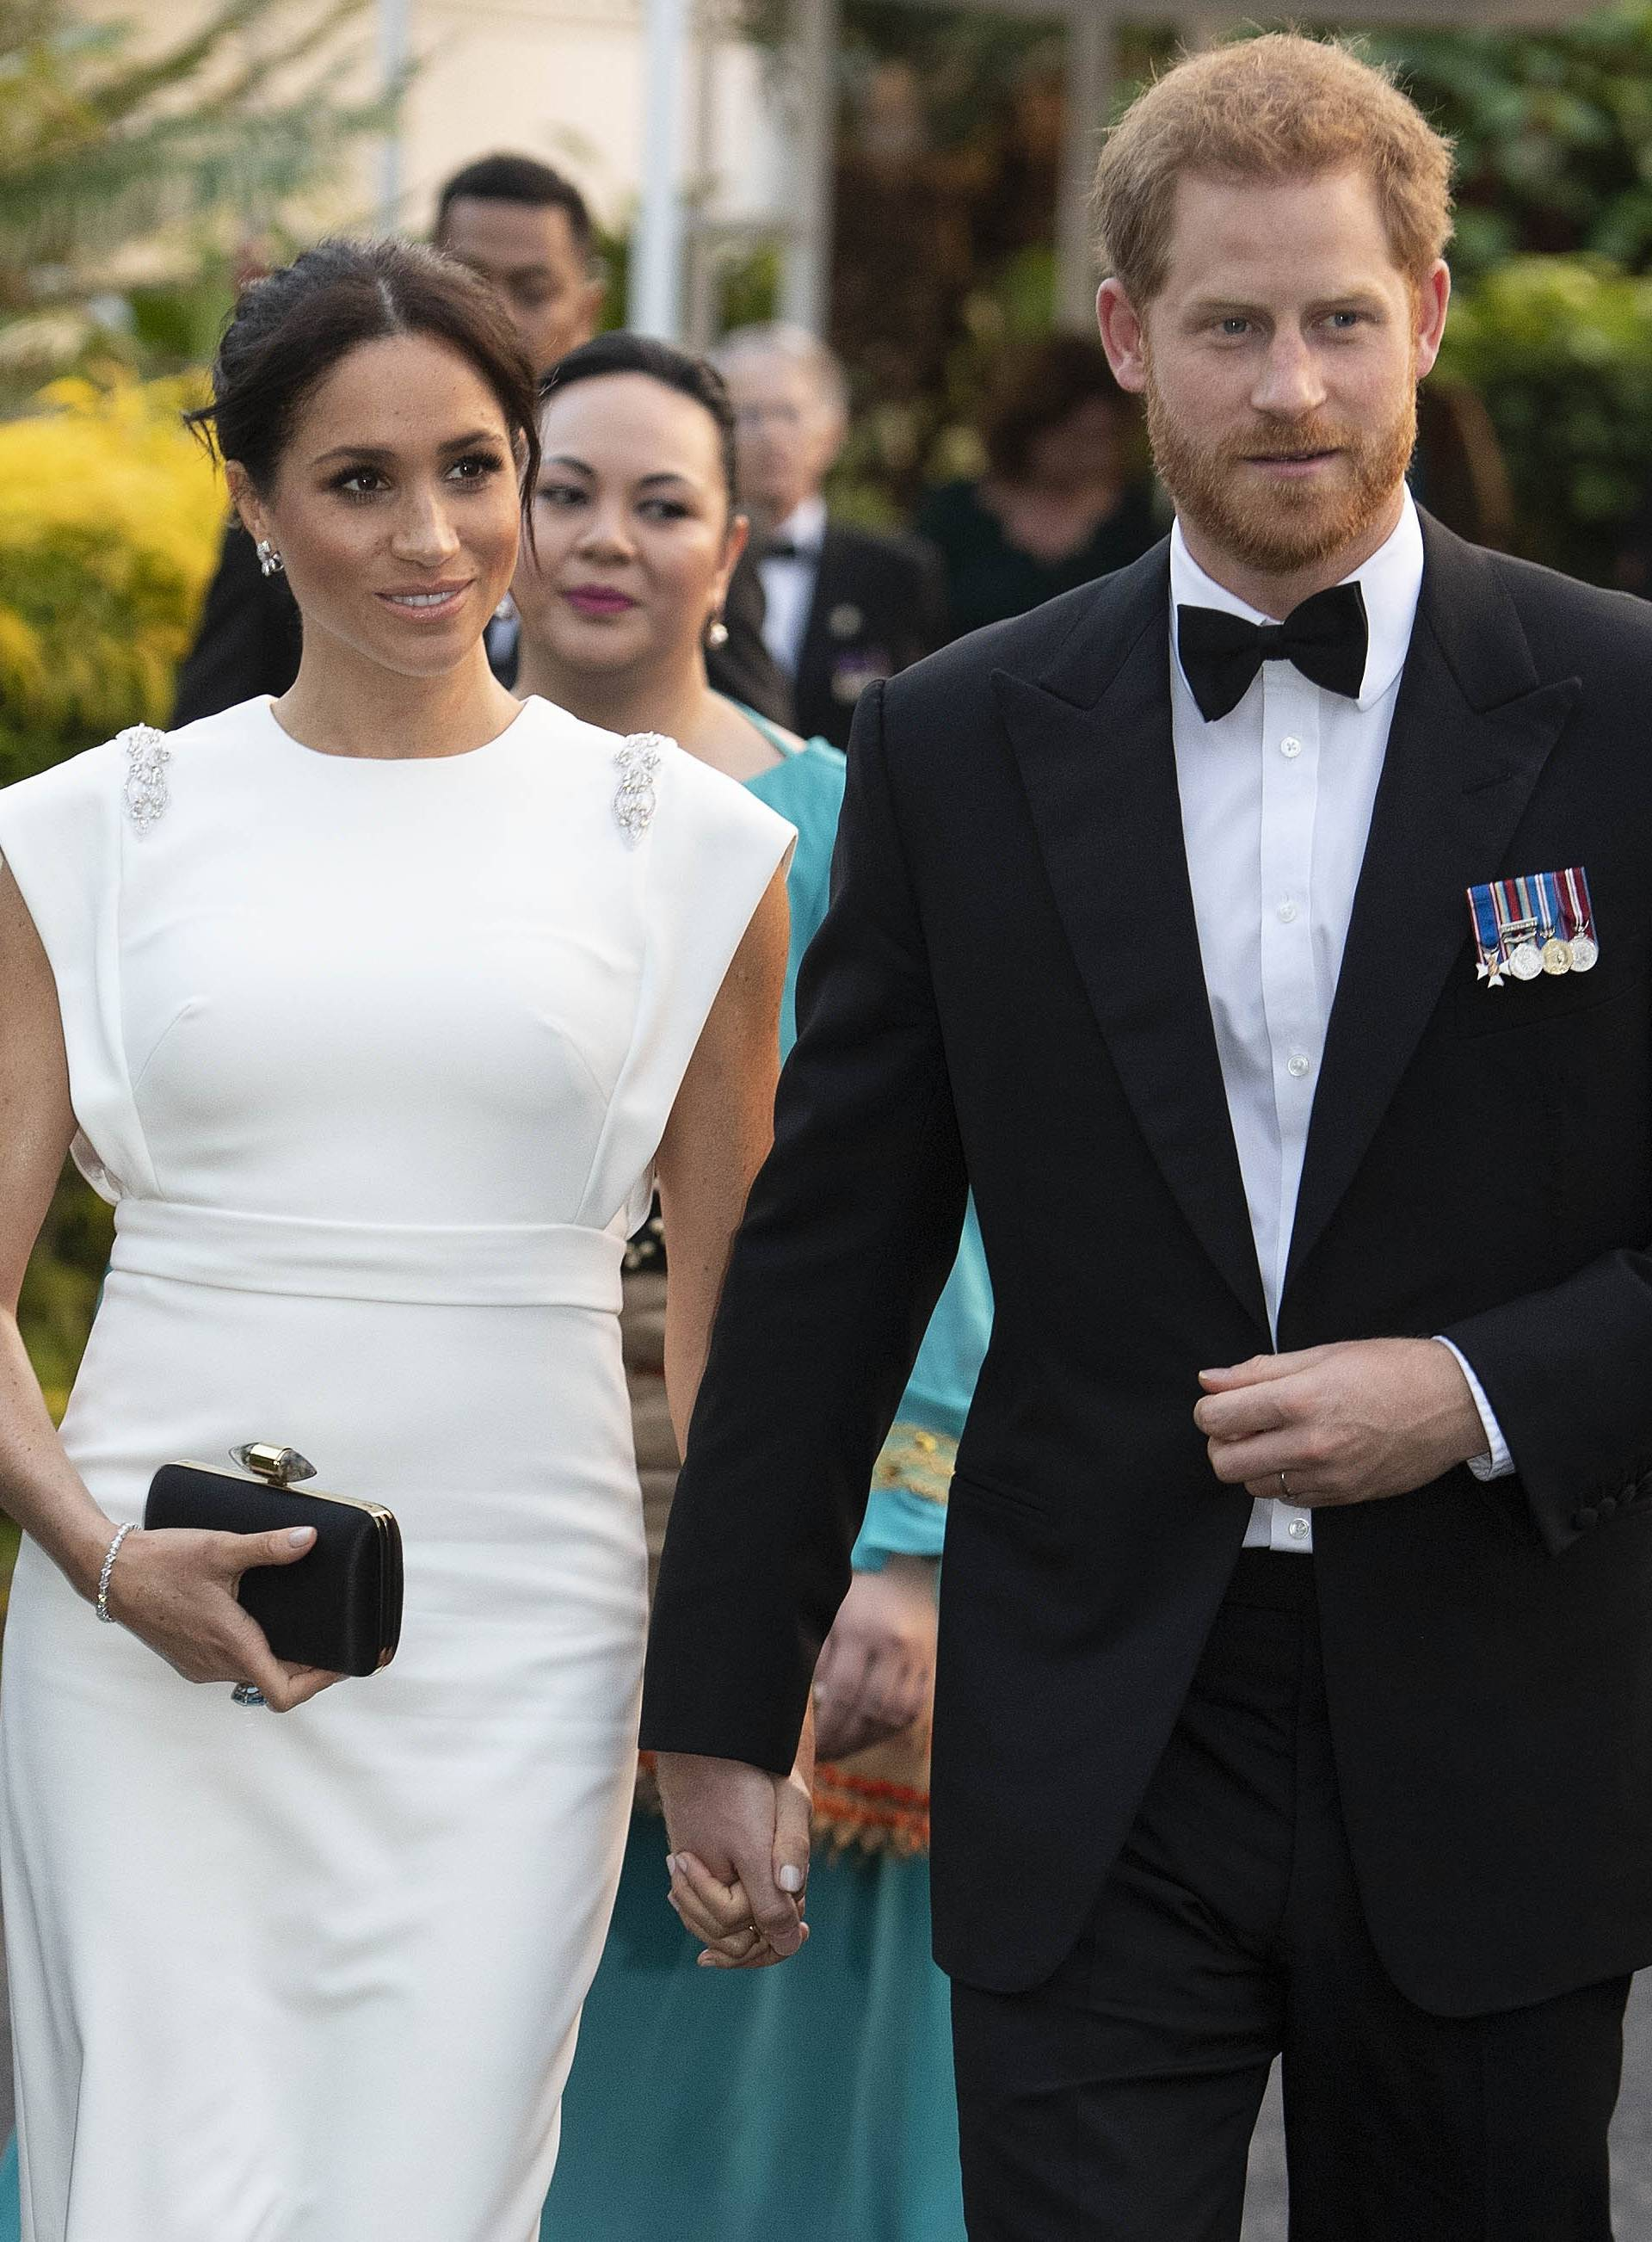 Royal tour of Tonga - Day One